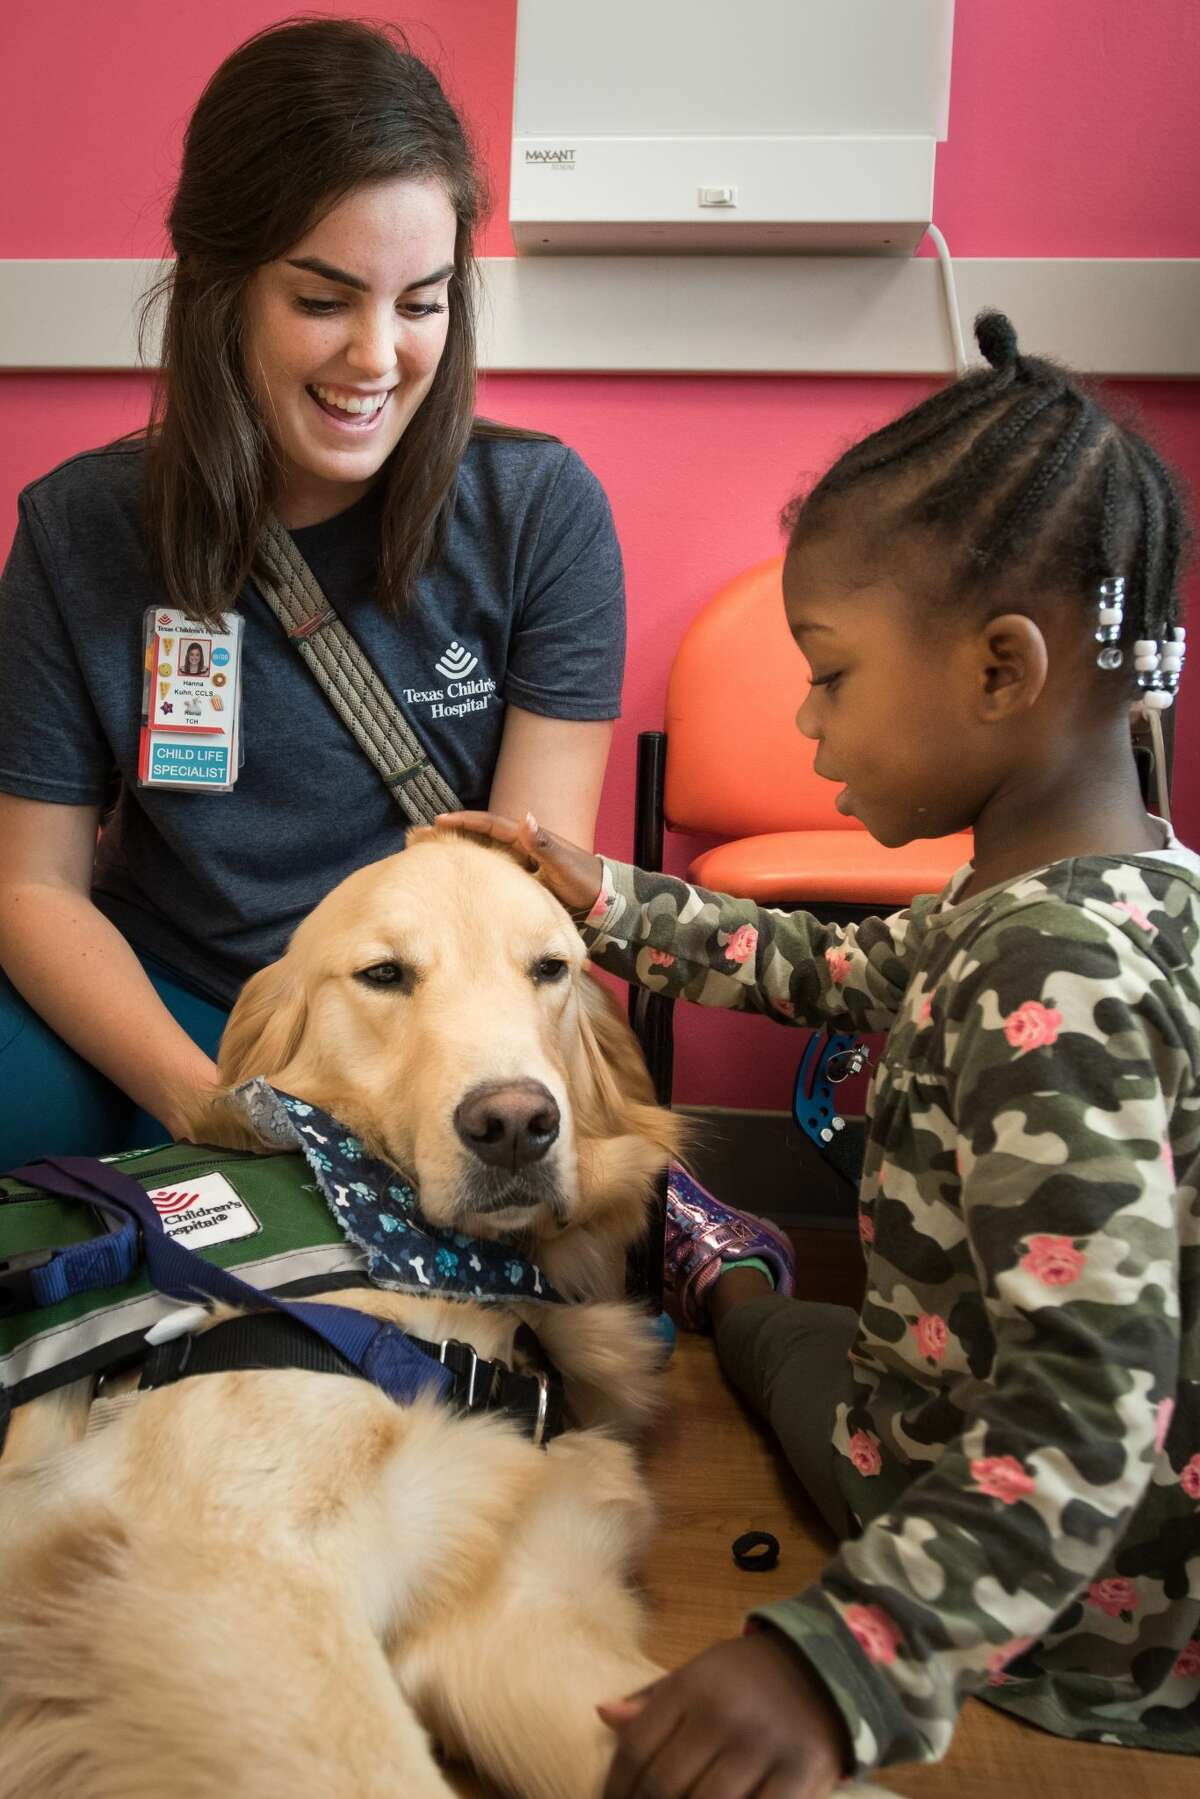 On Monday, Texas Children's Hospital in the Texas Medical Center announced the arrival of a new animal-assisted therapy dog named Pluto, a two-year-old Golden Retriever.